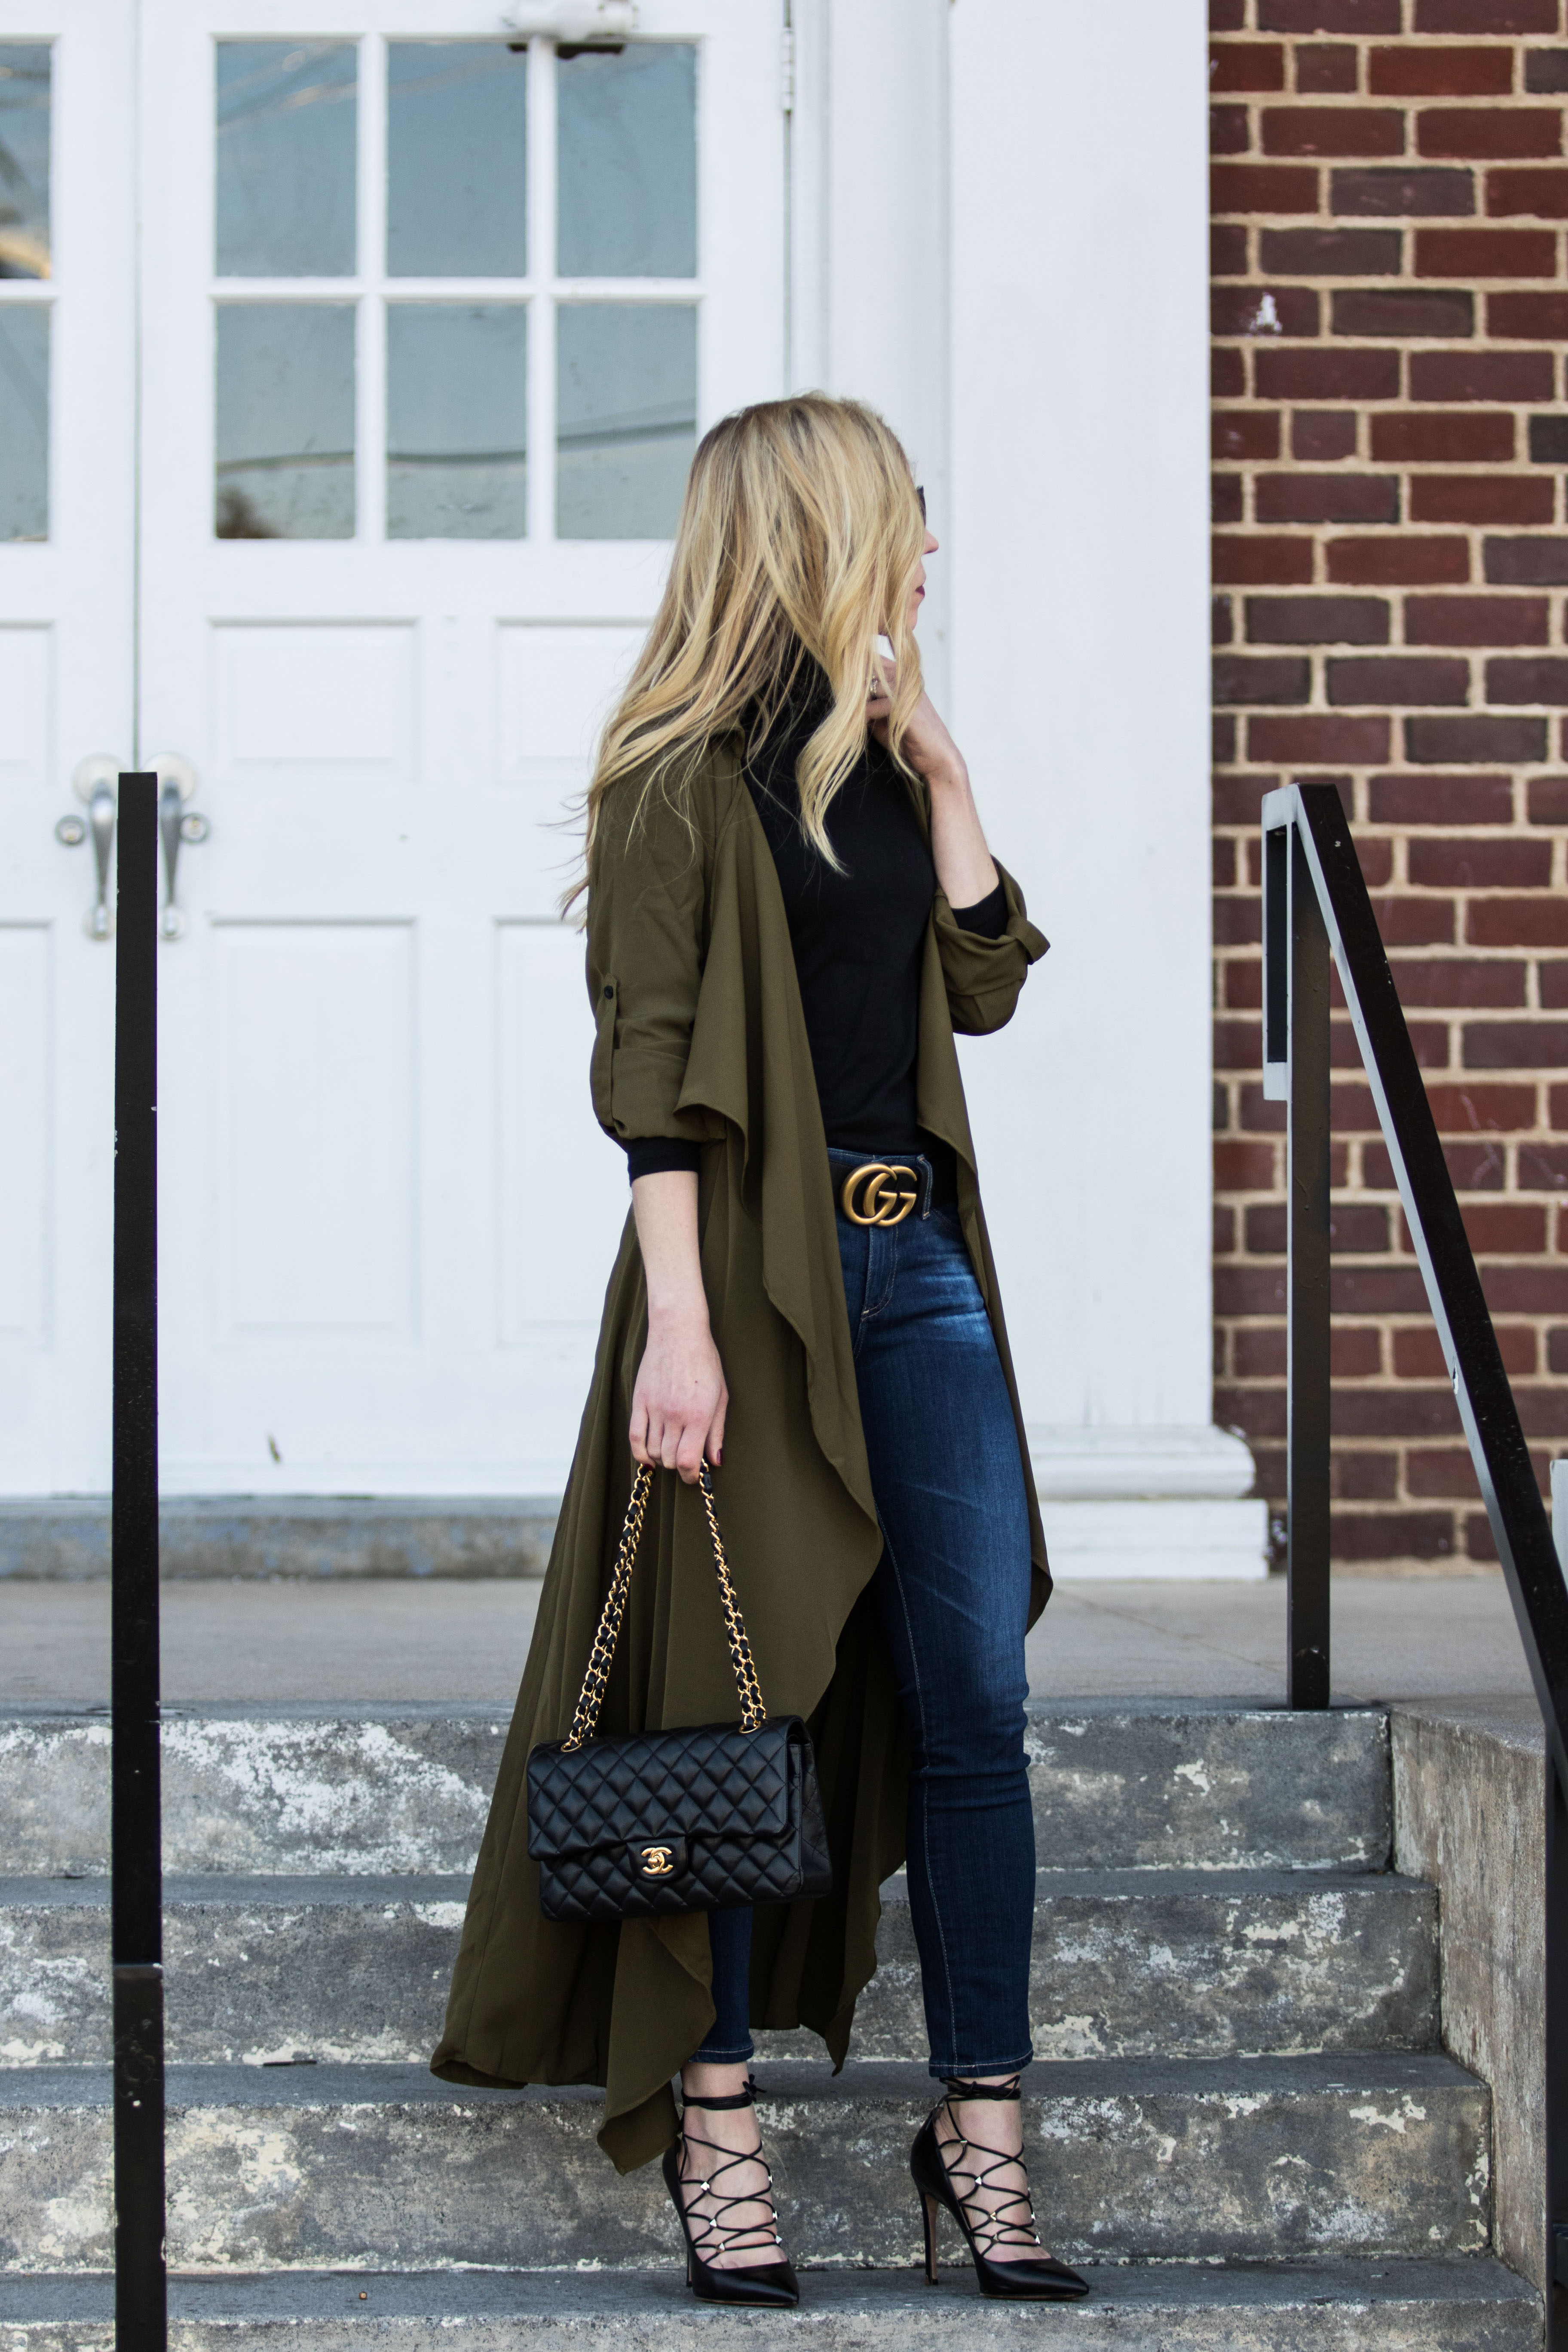 Styling a Utility Duster Jacket